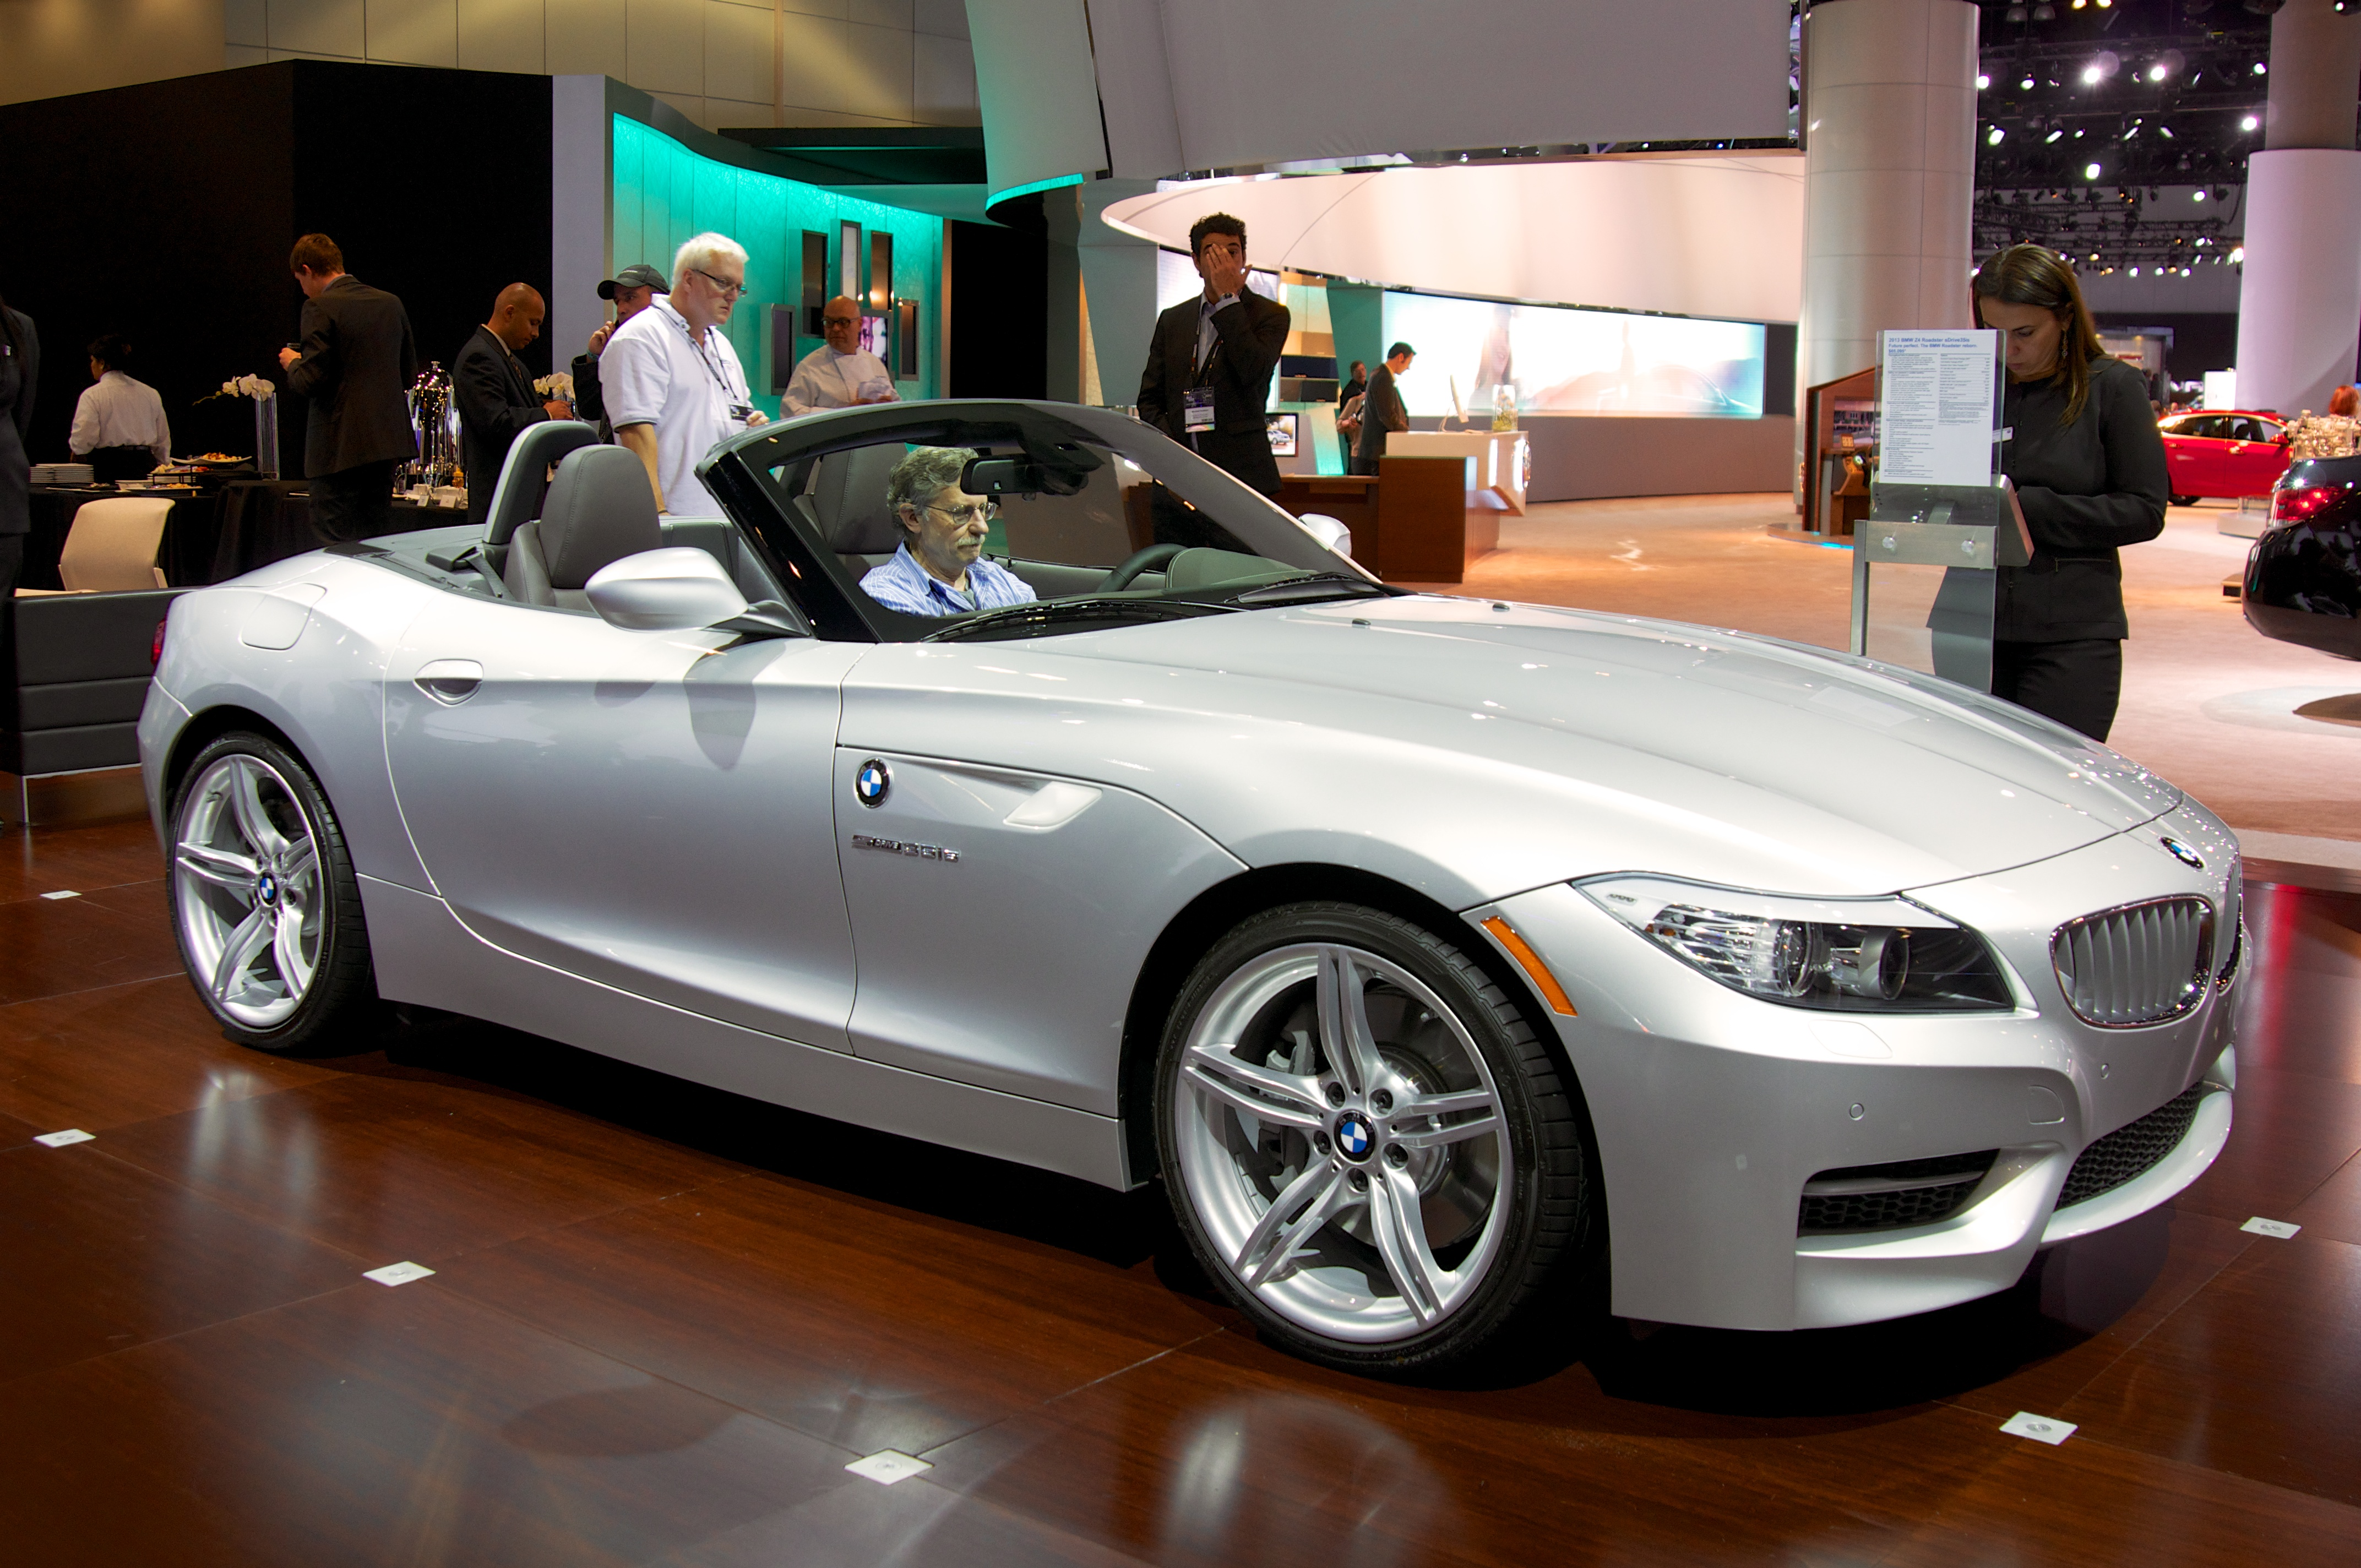 used cars roadster bmw top speed